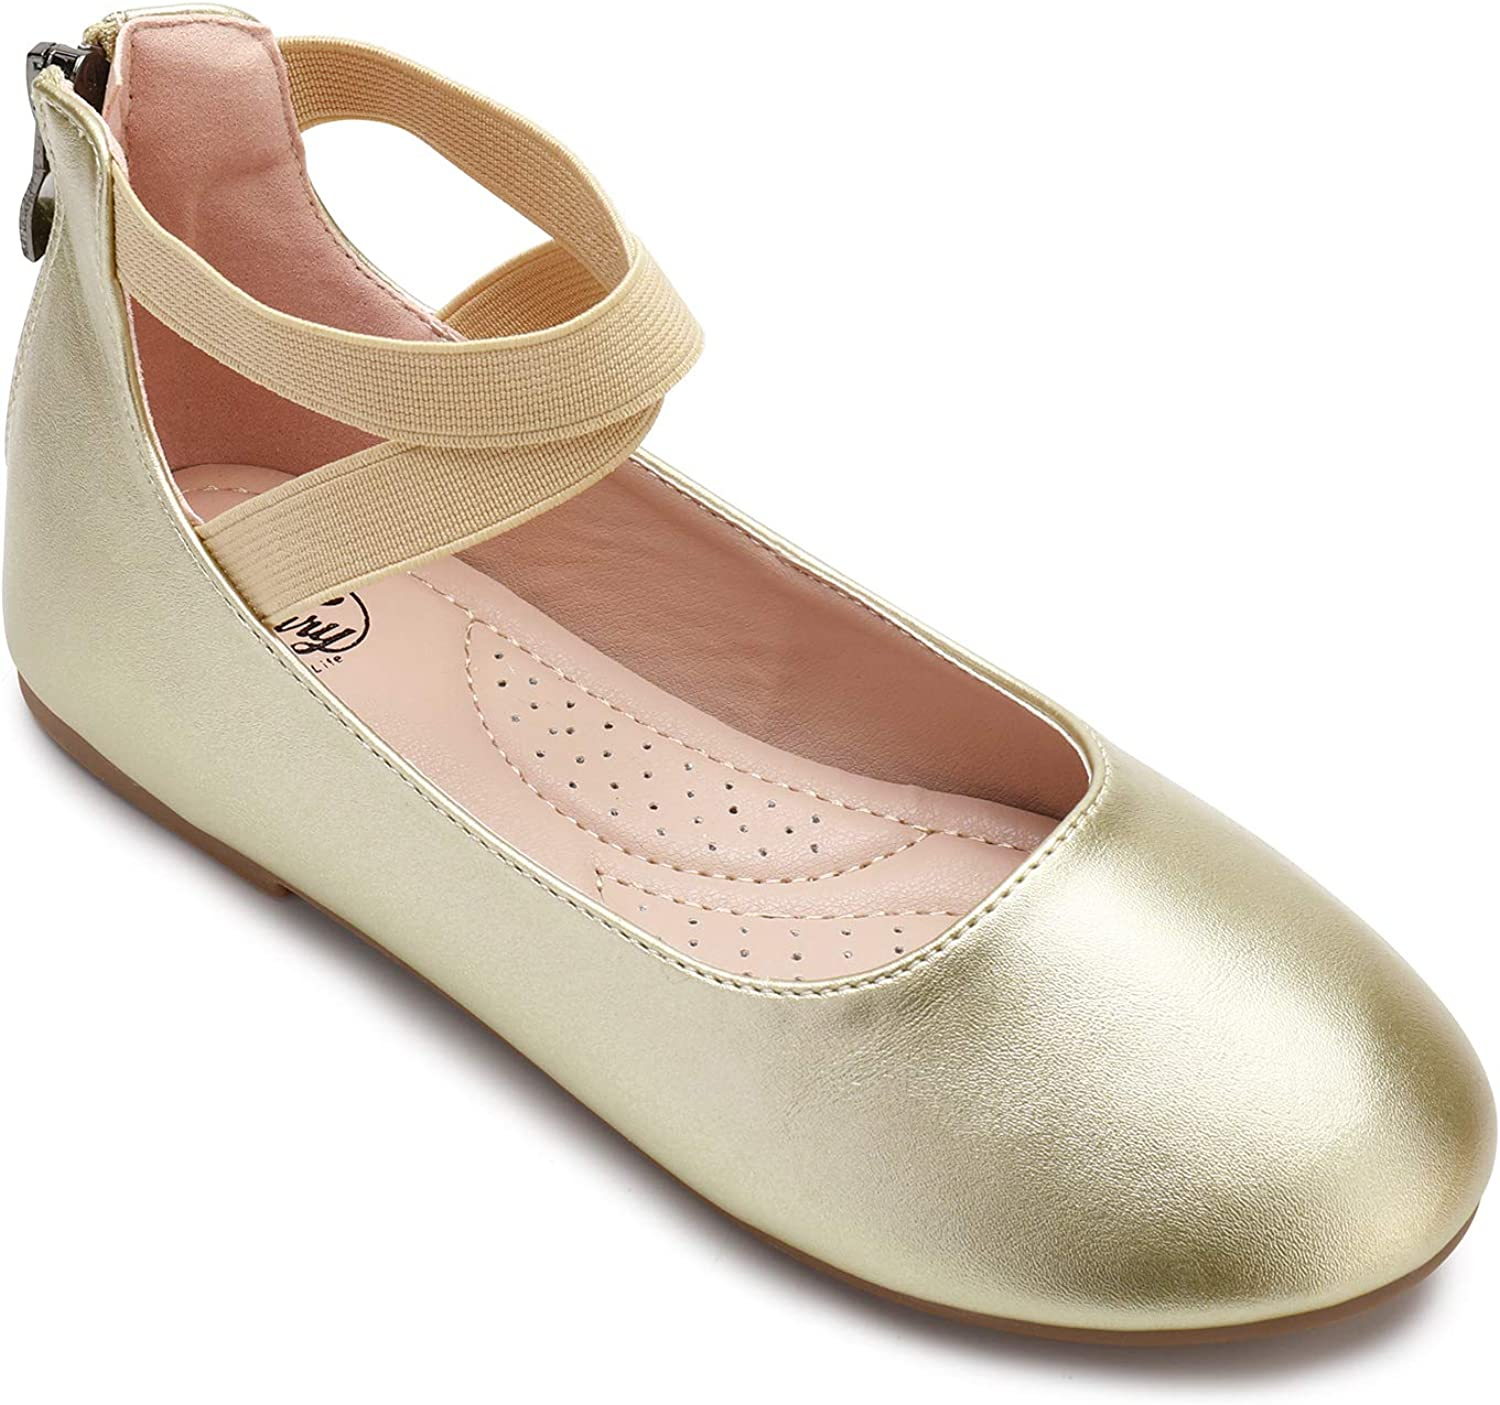 Trary specialty shop Little Girls Ballet Flats Roman Shoes Outlet SALE Elastic with Slip-on